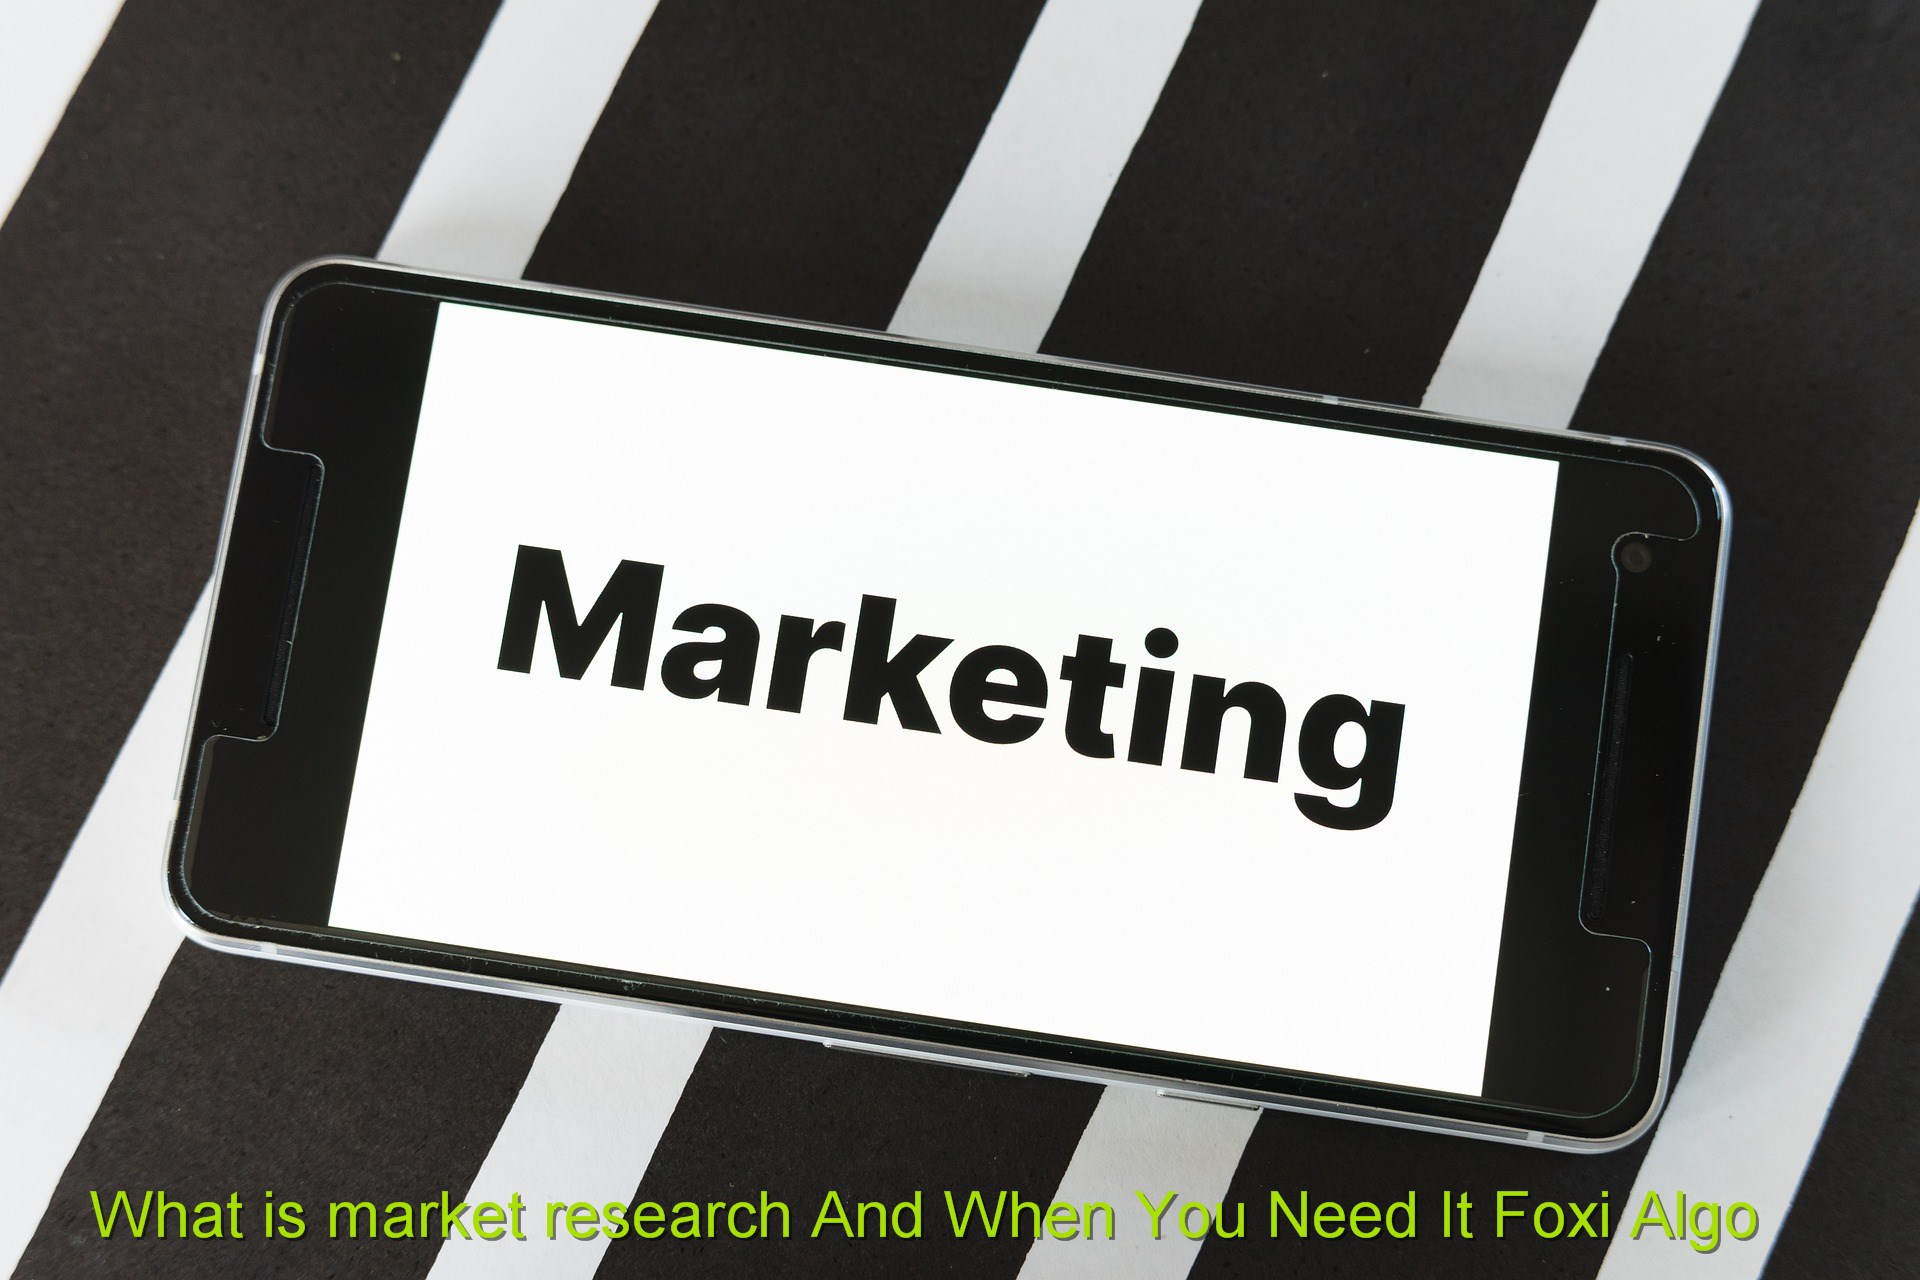 What is market research And When You Need It Foxi Algo